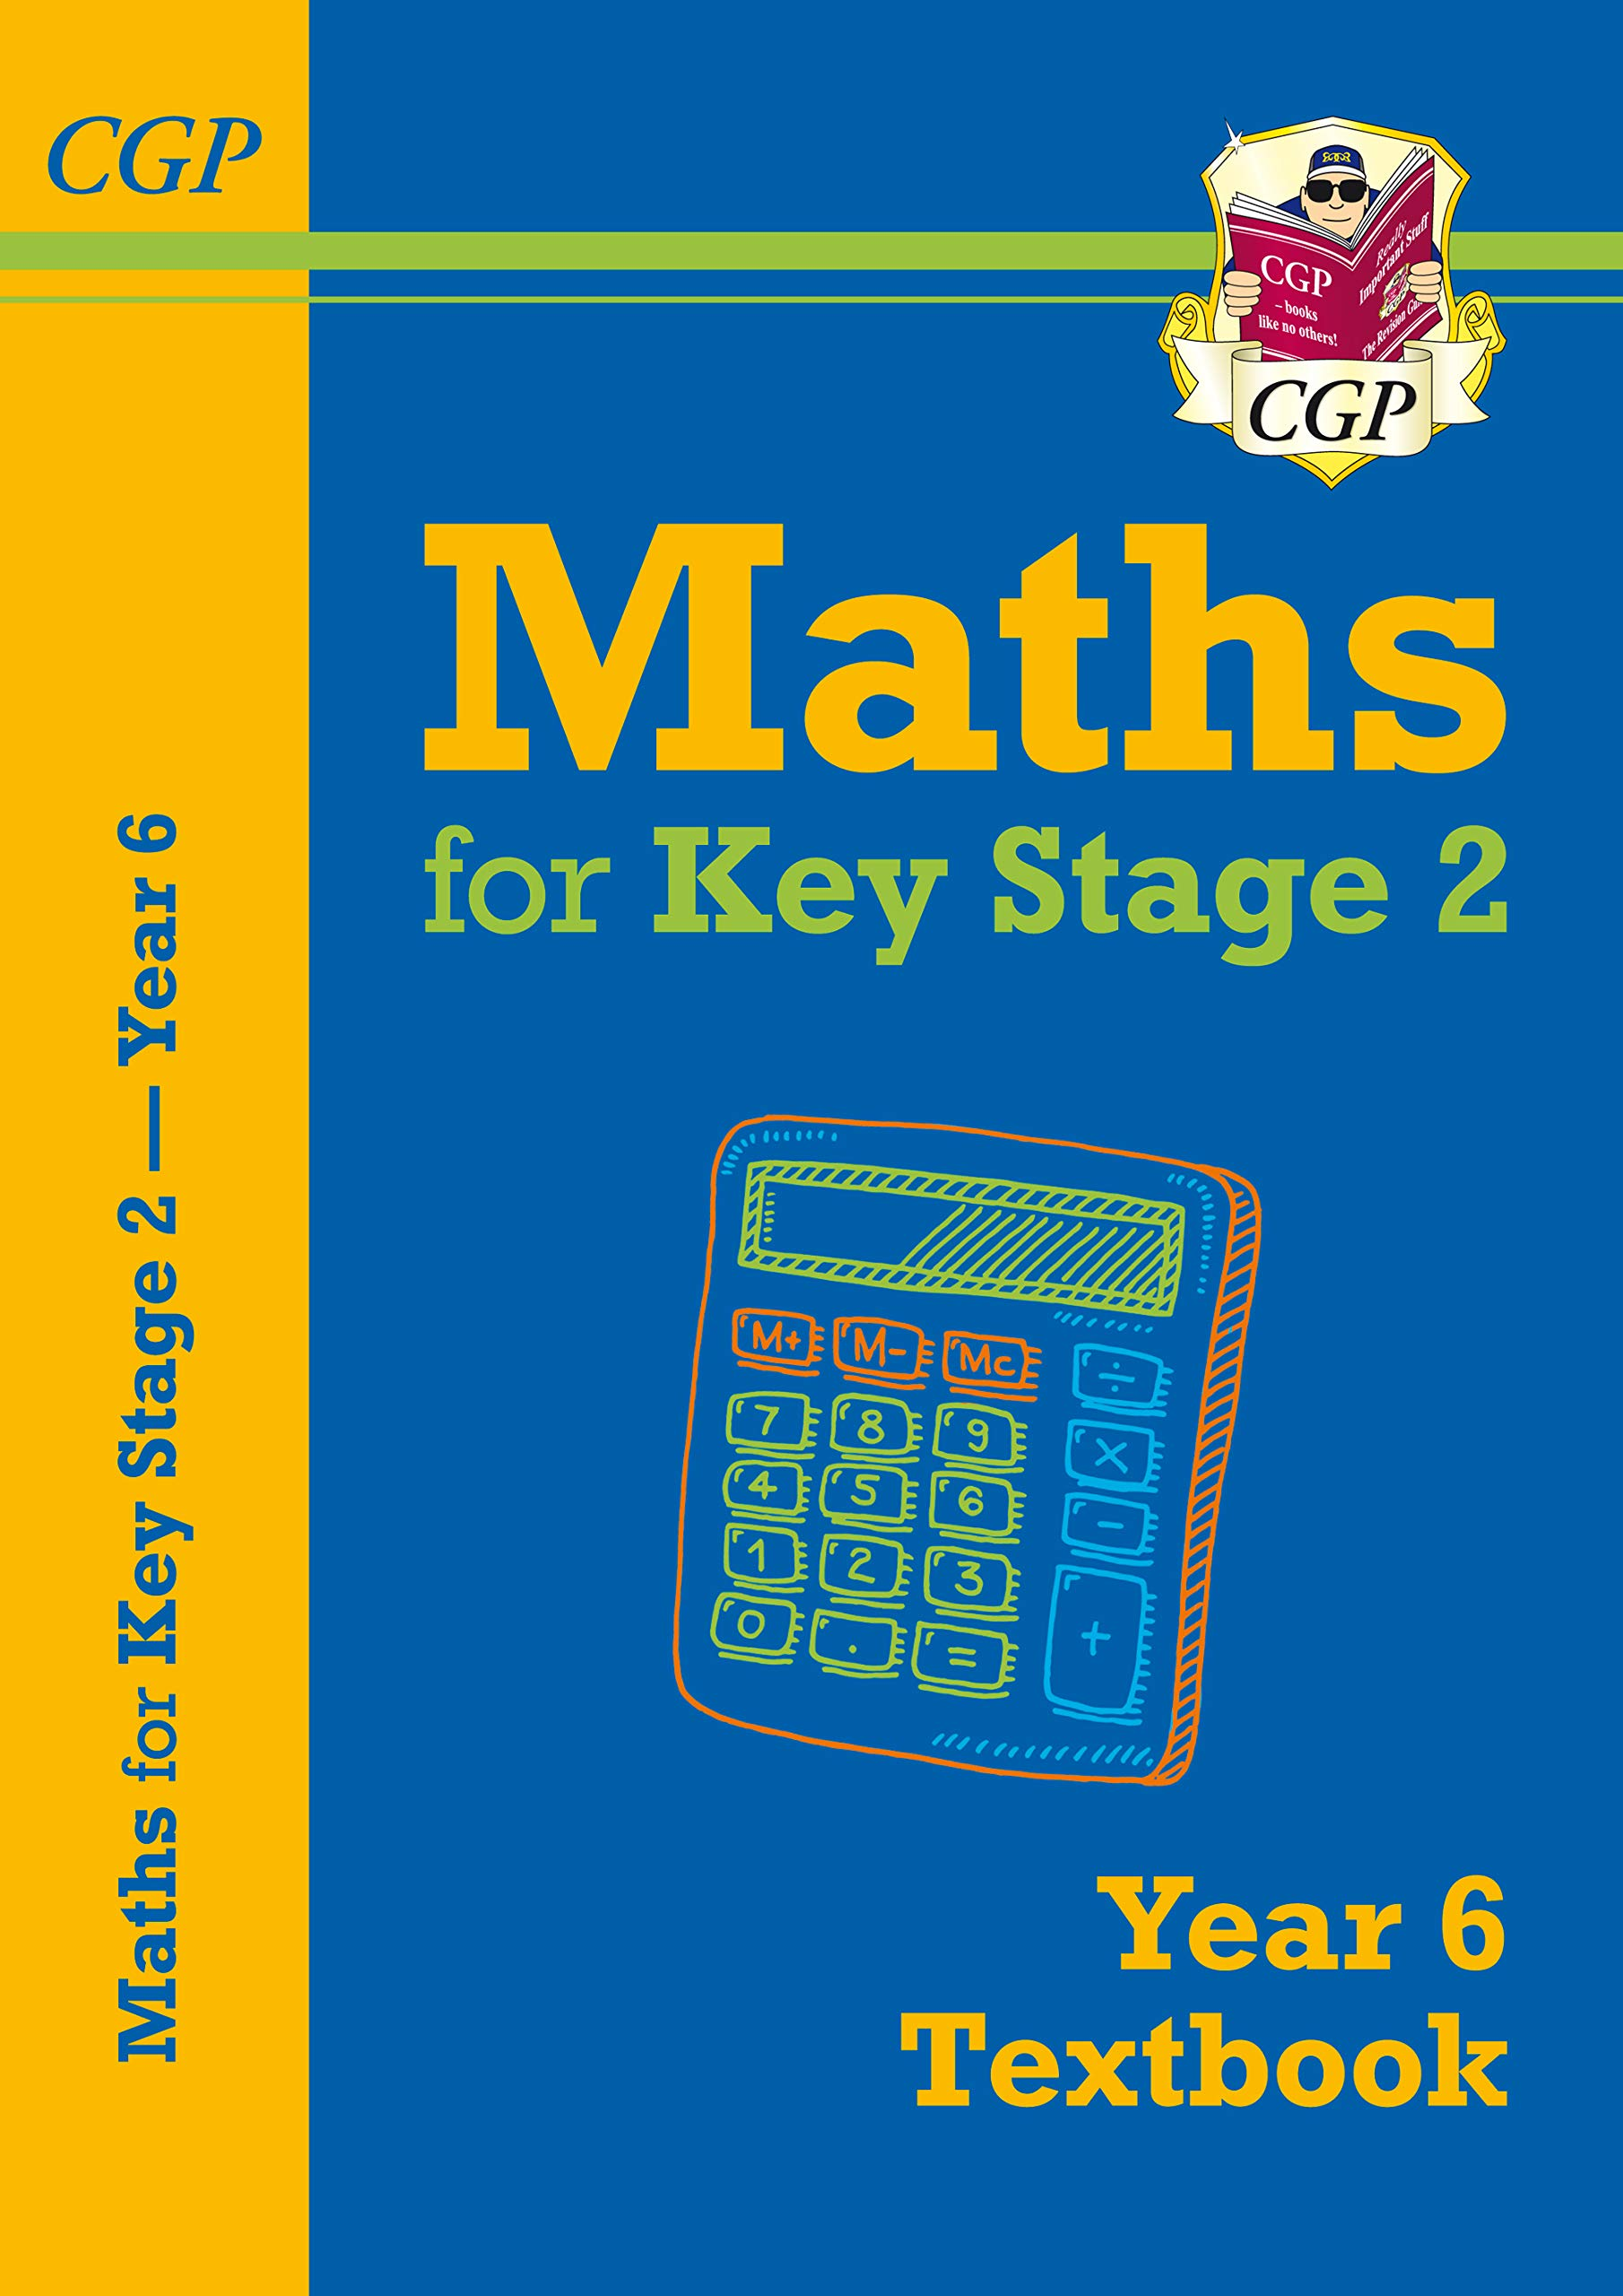 New KS2 Maths Textbook - Year 6 (CGP KS2 Maths): Amazon.co.uk: CGP ...